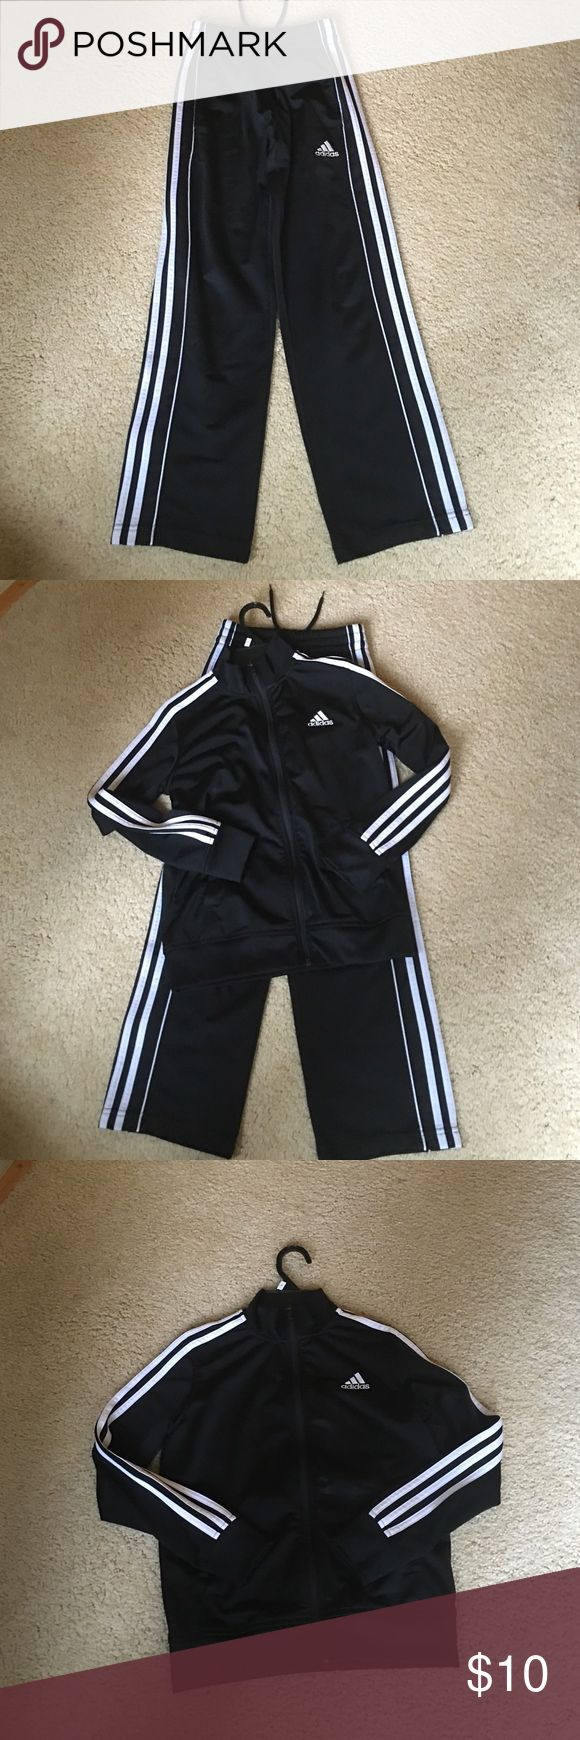 Adidas sweatshirt and sweatpants  for boys Nice, comfortable gently used adidas training suit for boys size s, Adidas Matching Sets